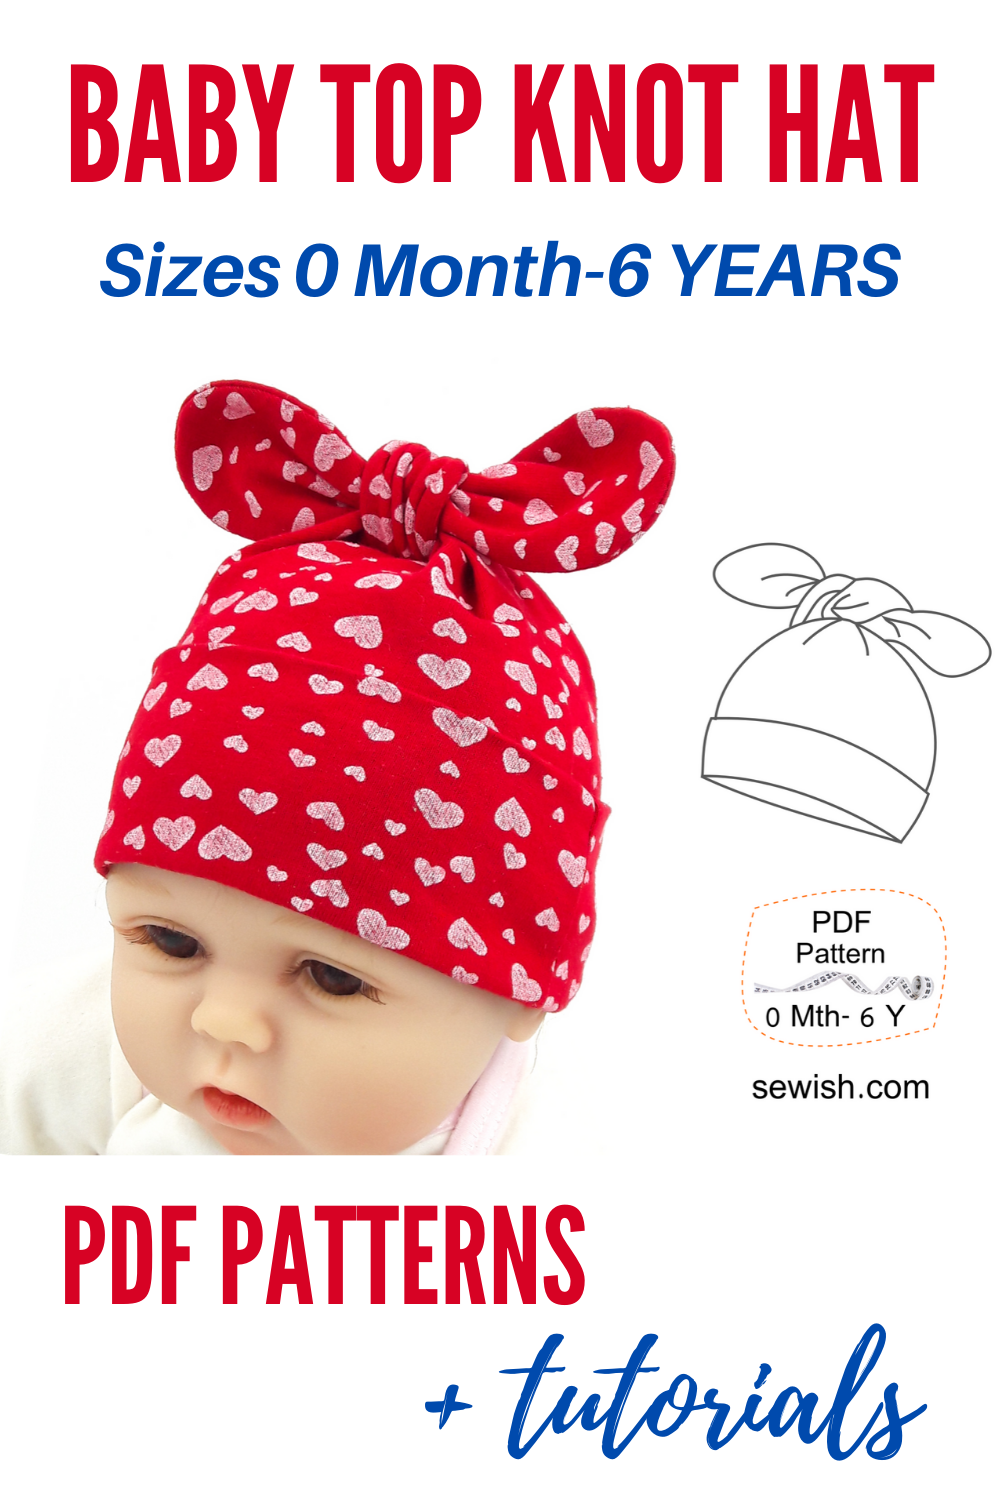 Baby Top Knot Hat Sewing Pattern Sizes Newborn 6 Years Baby Hat Sewing Pattern Hat Patterns To Sew Baby Sewing Patterns